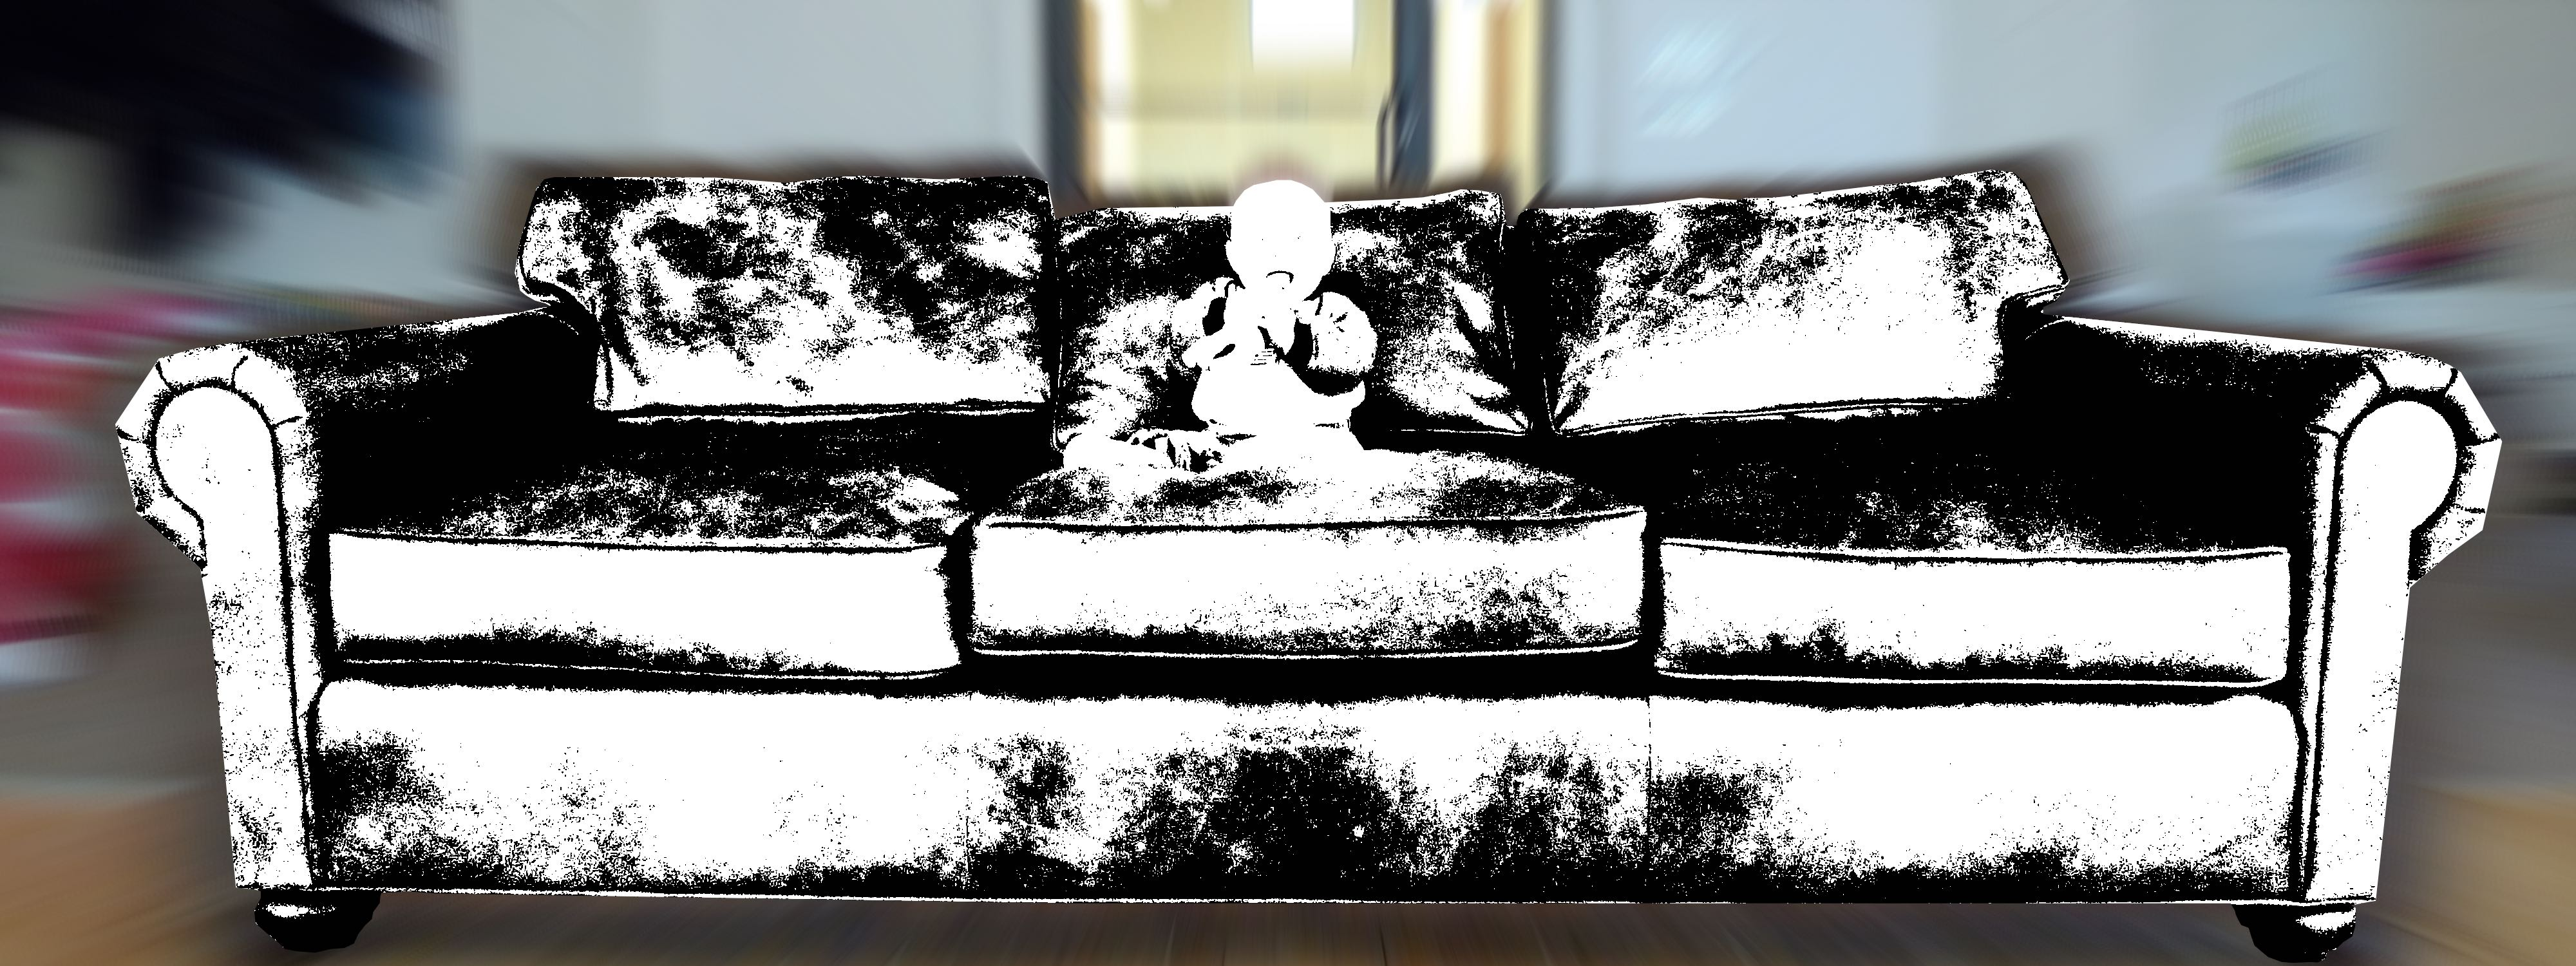 2015-06-23_Big-couch-little-kid_sofa